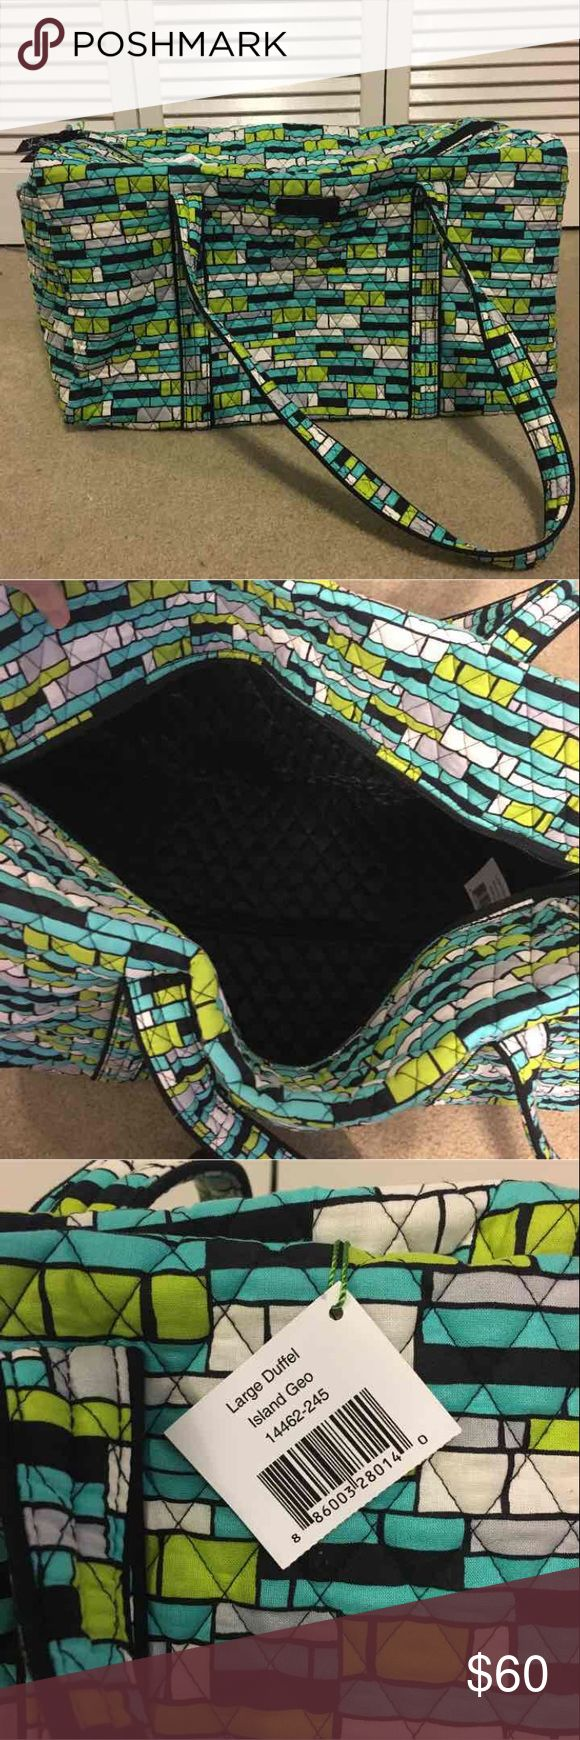 """Vera Bradley Large Duffel Vera Bradley Large Duffel in Island Geo -Original price: $85 -New with tags, never been used -Exclusive pattern  -Outside end pocket -Dimensions: 2"""" W x 11½"""" H x 11½"""" D - 15"""" strap drop Vera Bradley Bags Travel Bags"""